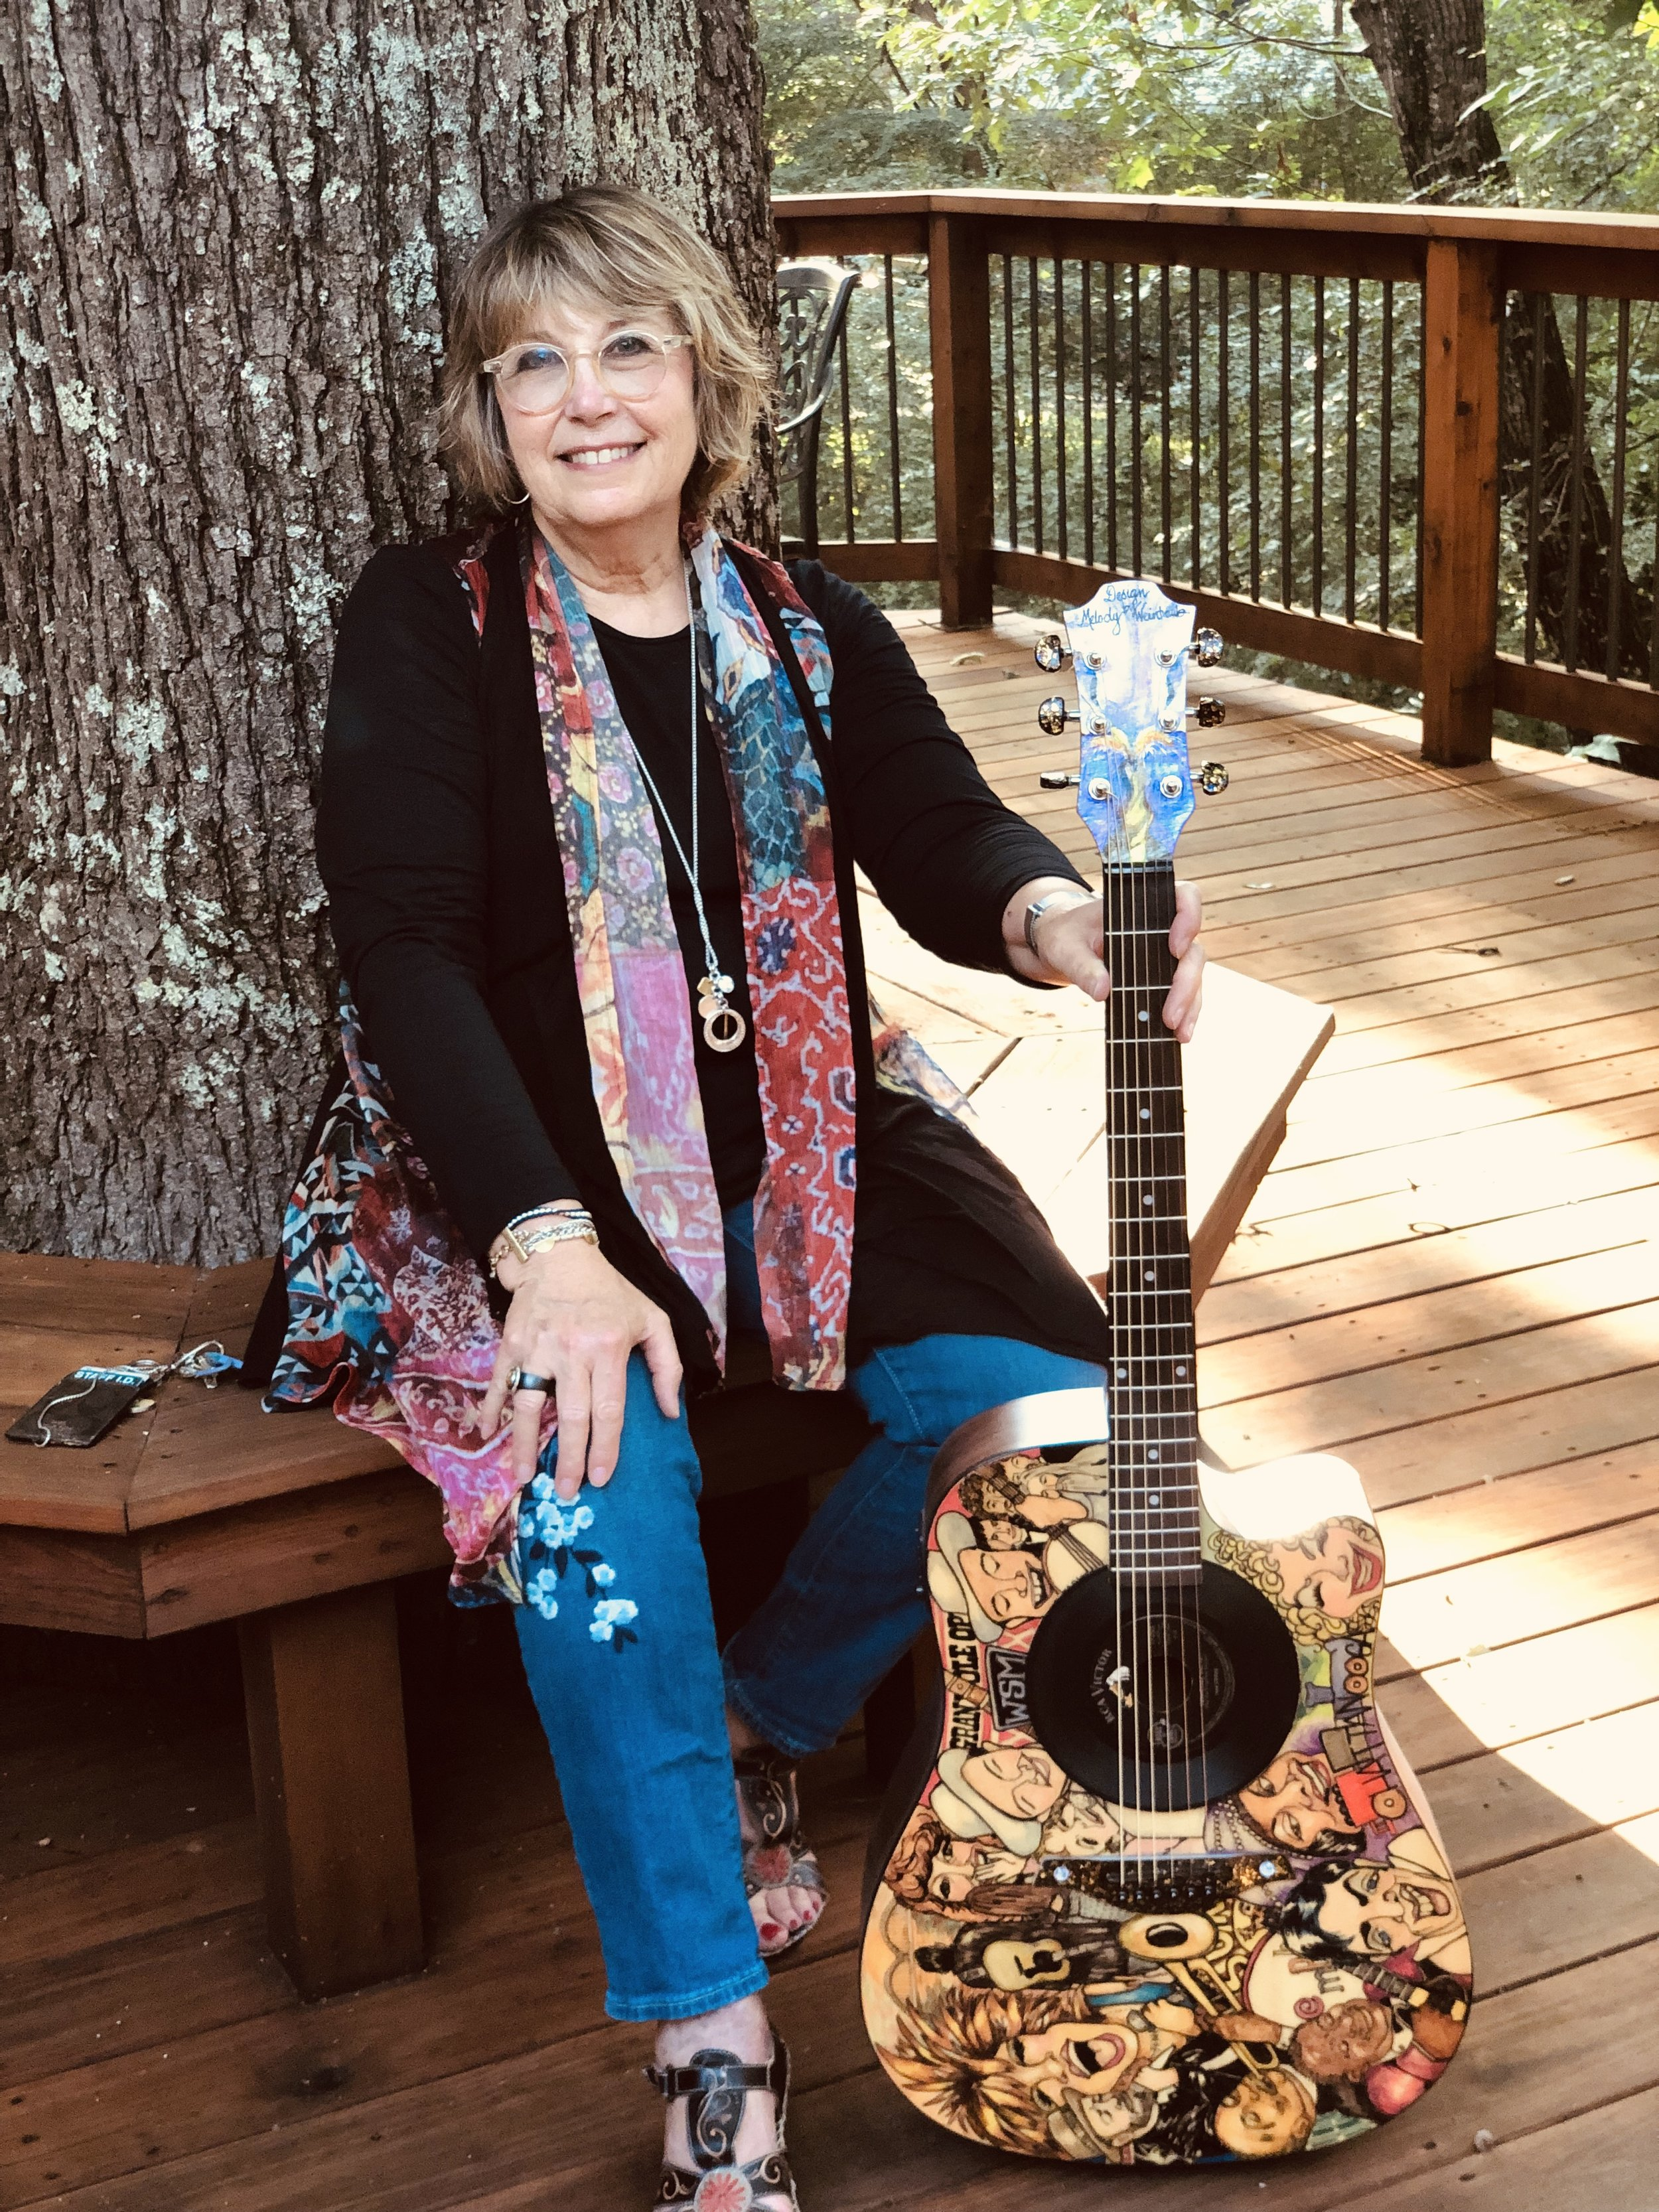 """Melody Weintraub with her art guitar, """"Tennessee Sounds."""" 2019. DO NOT USE WITHOUT PERMISSION."""